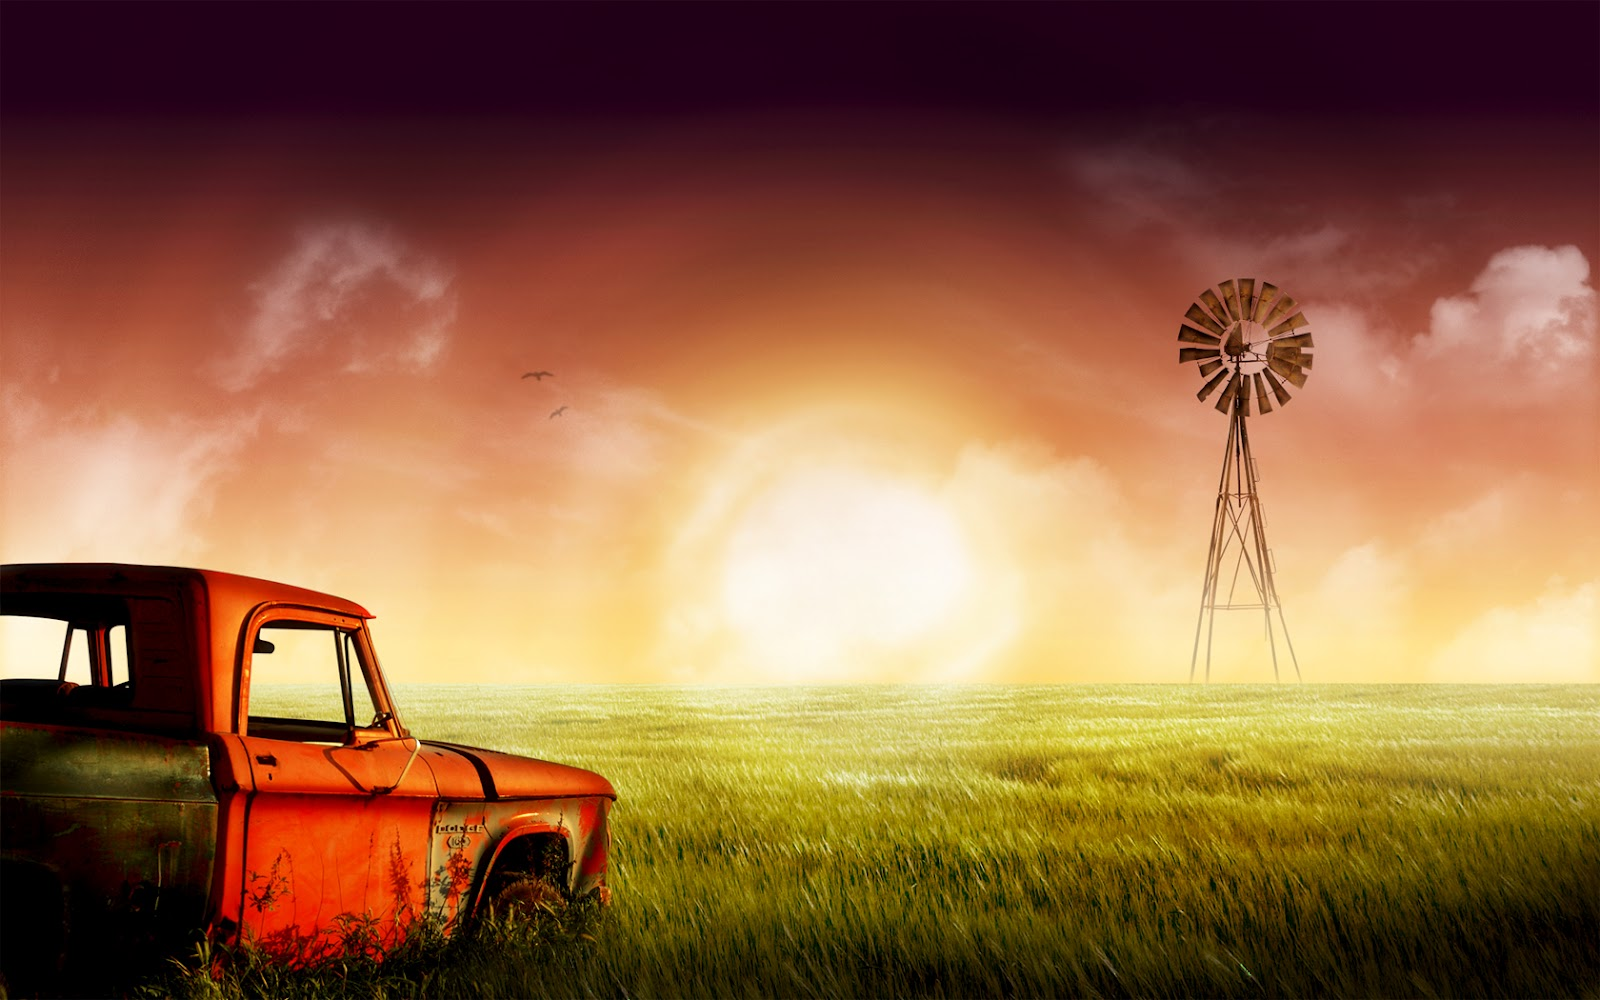 Farm Wallpapers - Farm Live Images, HD Wallpapers - GG.YAN